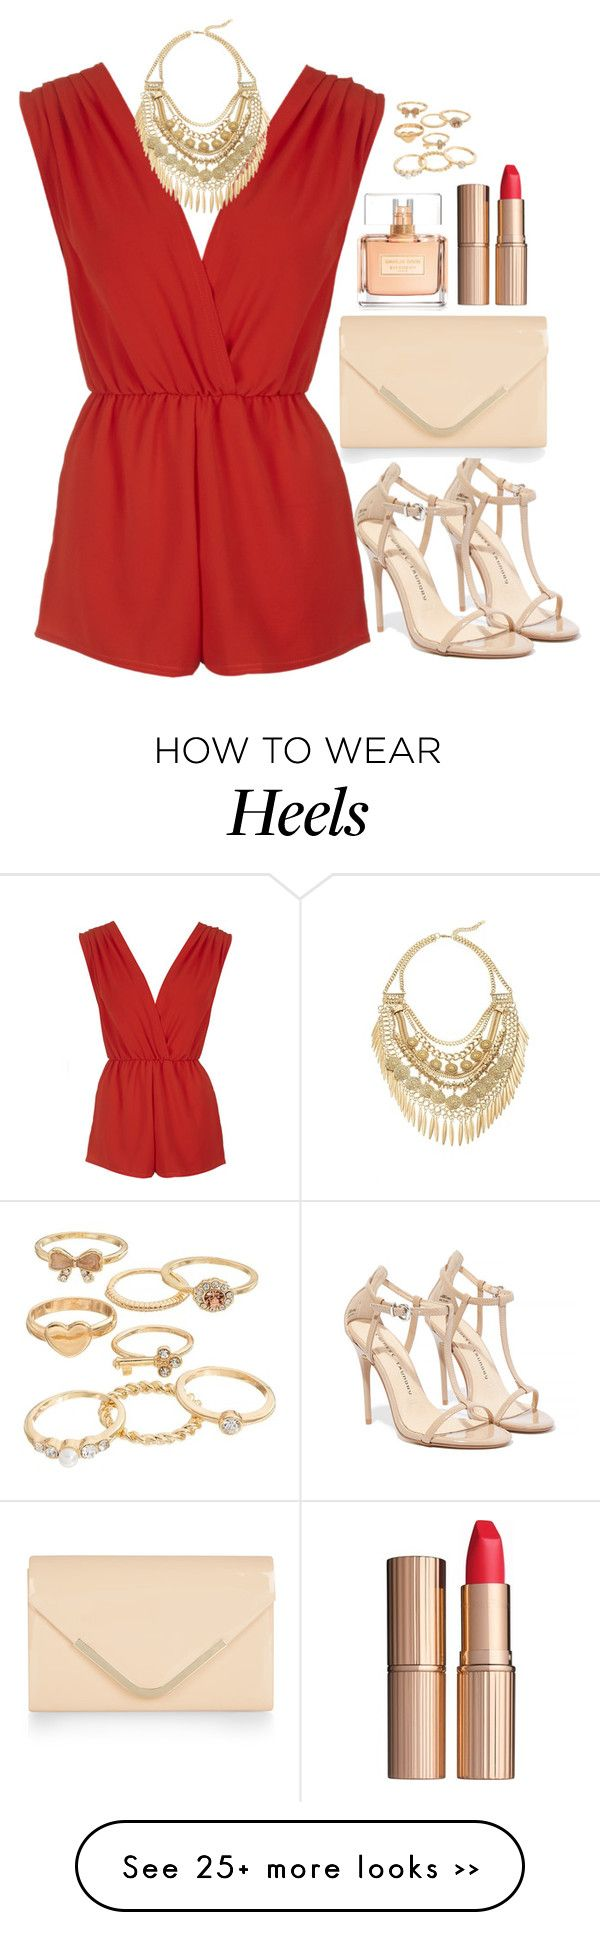 """Untitled #2854"" by natalyasidunova on Polyvore"